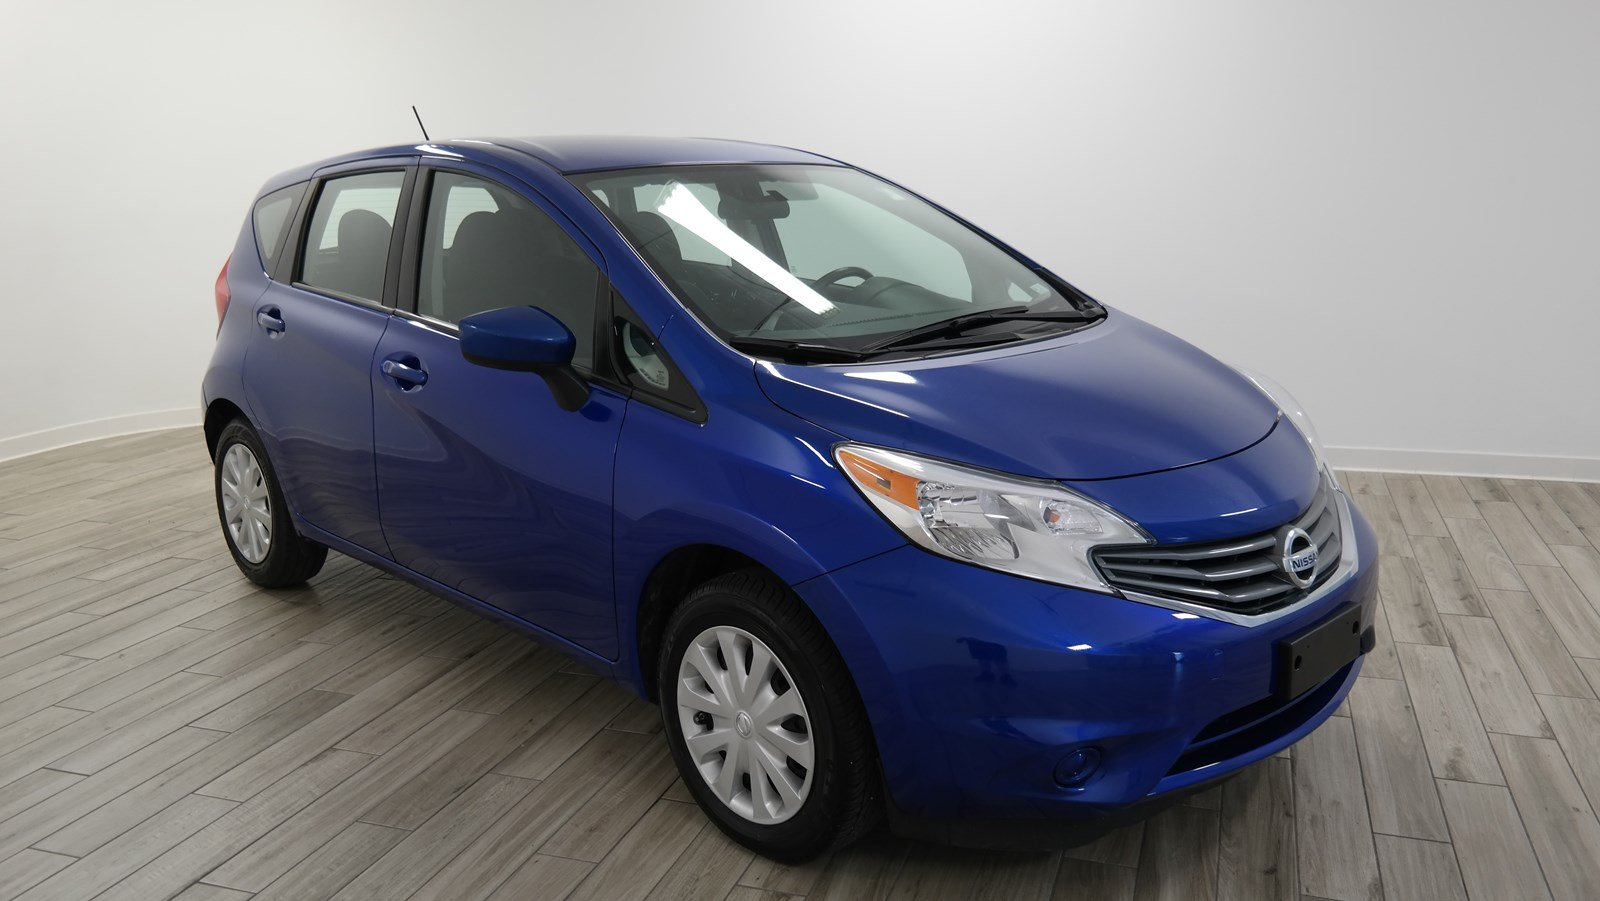 ... Used 2016 Nissan Versa Note SV Hatchback For Sale In St. Louis, MO ...